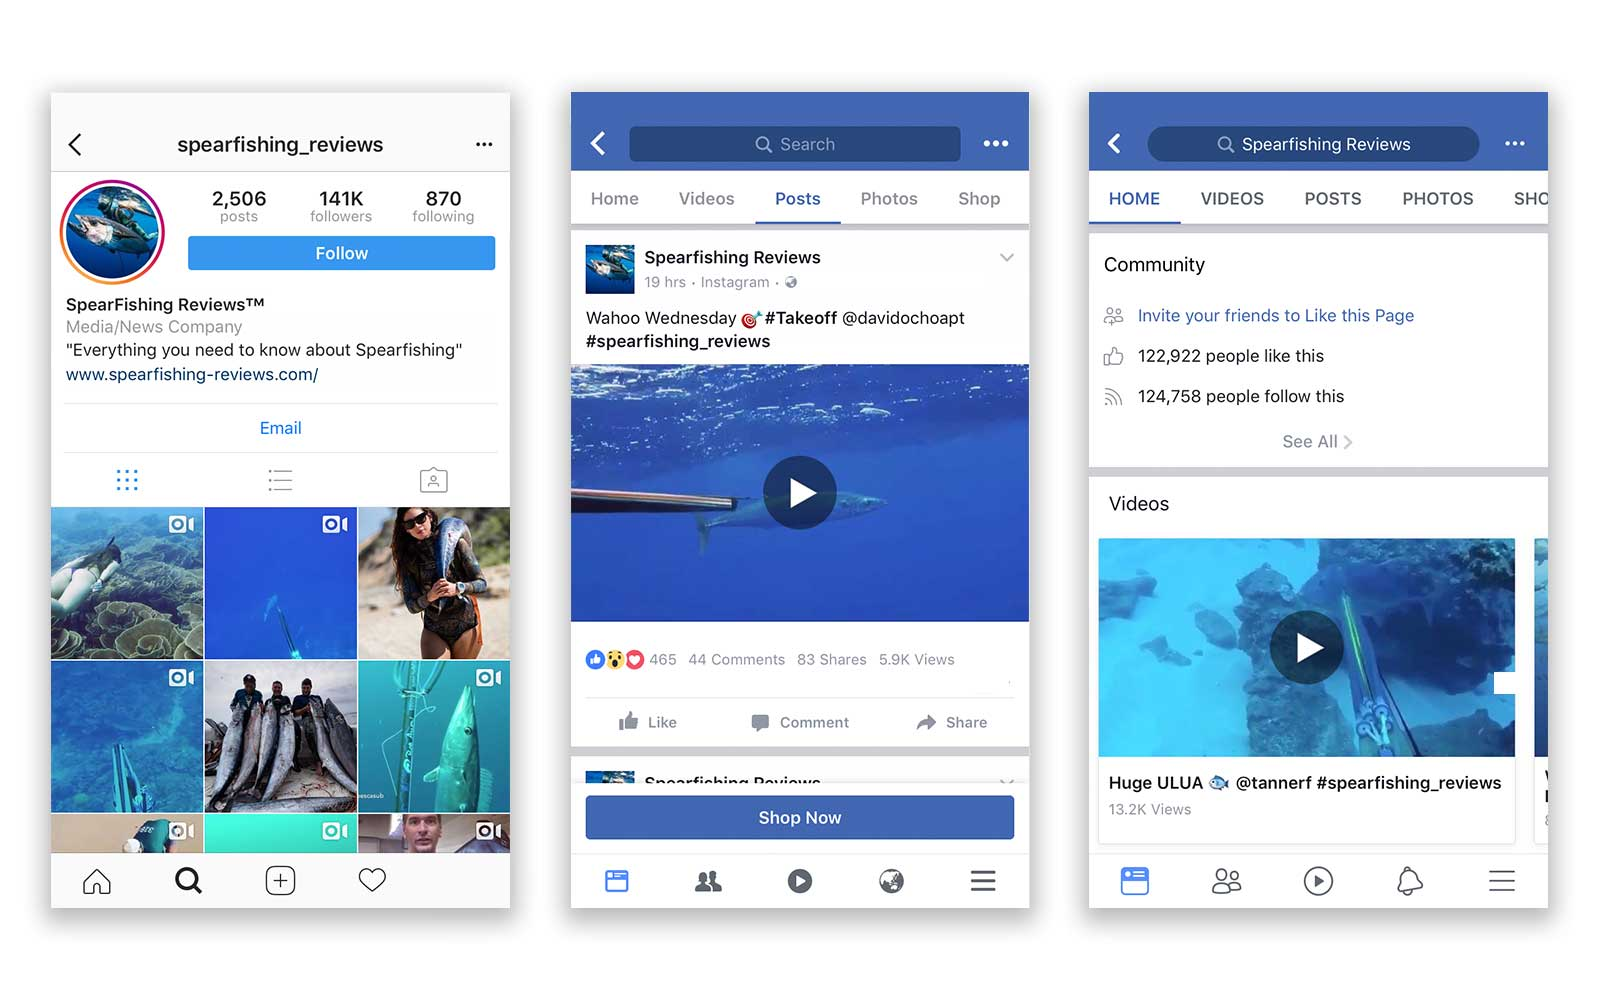 spearfishing_reviews facebook video